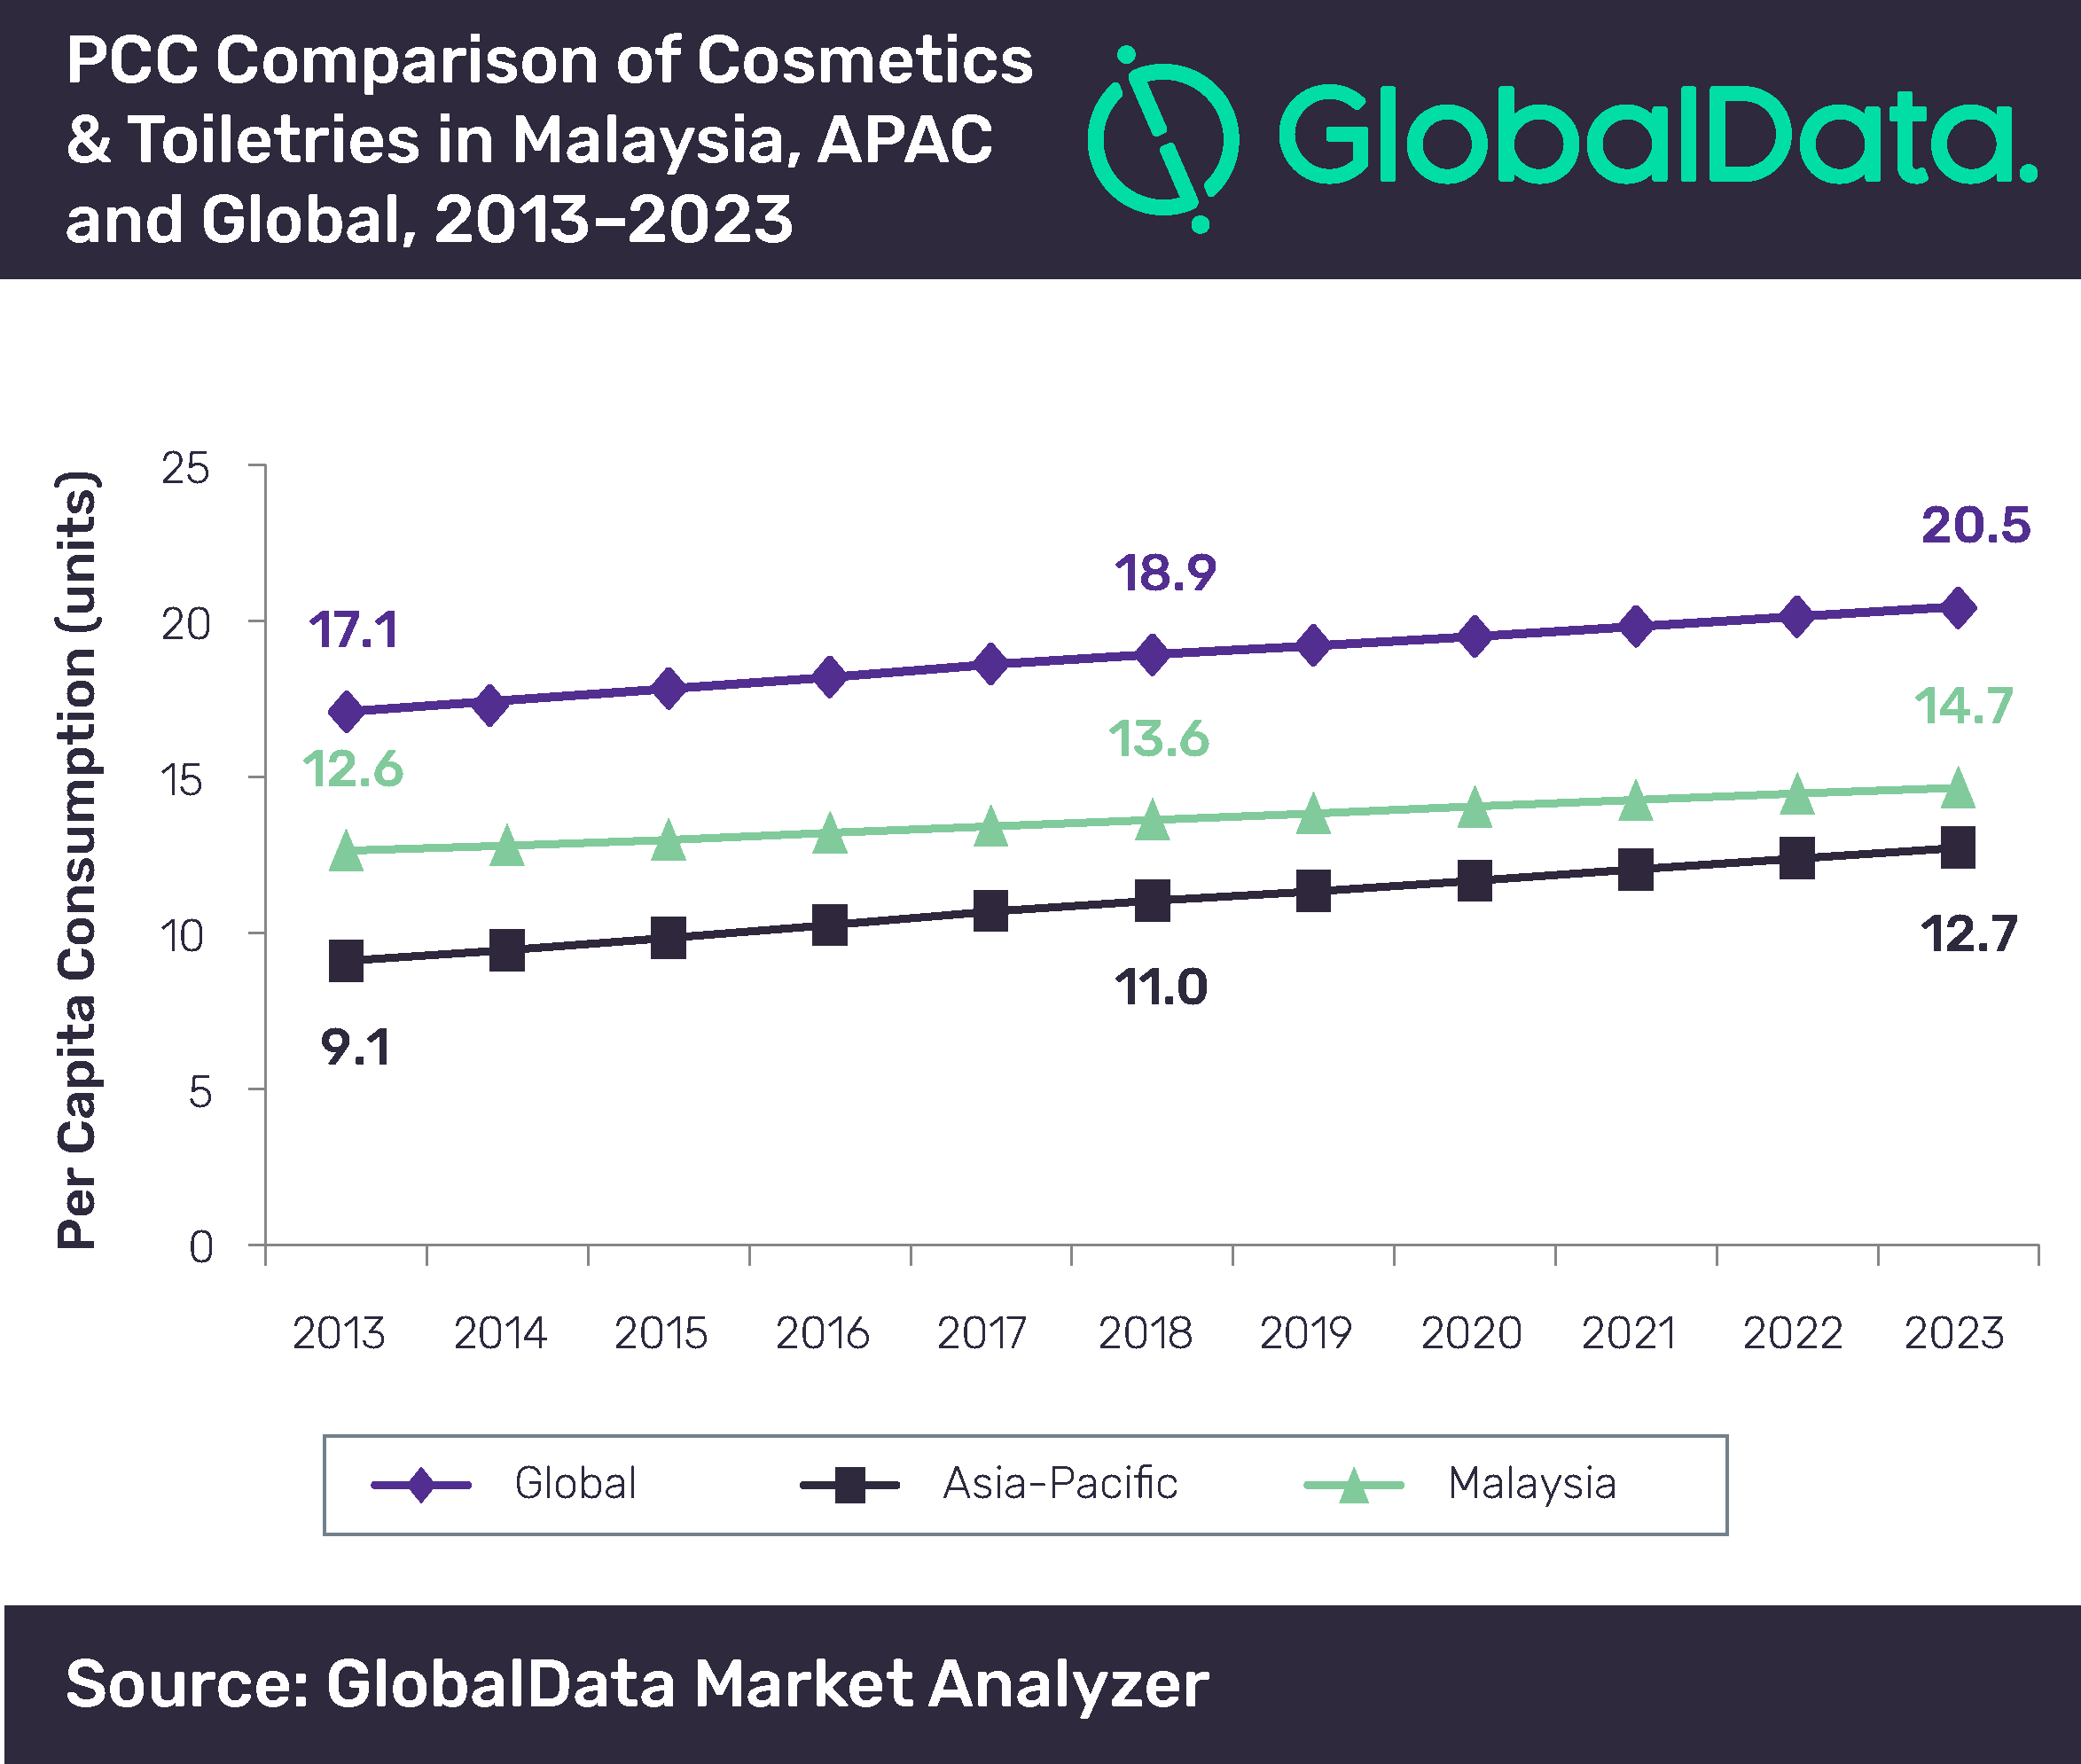 Malaysia S Cosmetics Toiletries Industry Poised For Modest Value Cagr Of 4 2 Over 2018 2023 Says Globaldata Globaldata